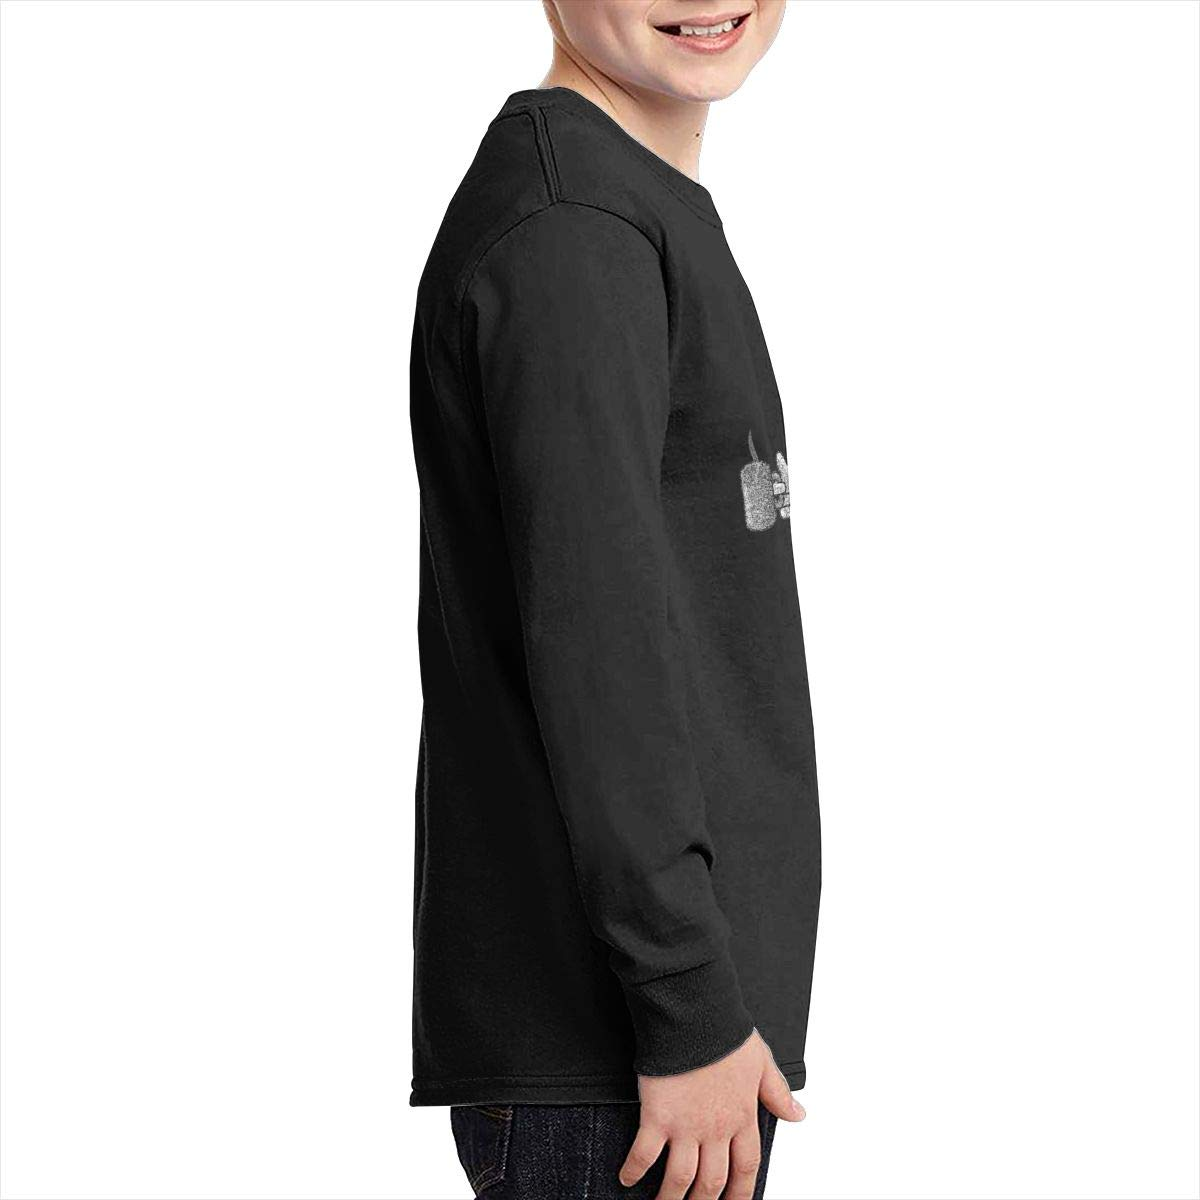 MARRIT IDunkin Donuts Junior Long Sleeve T-Shirt Funny Boys Long Sleeve Round Neck Graphic Tees Black